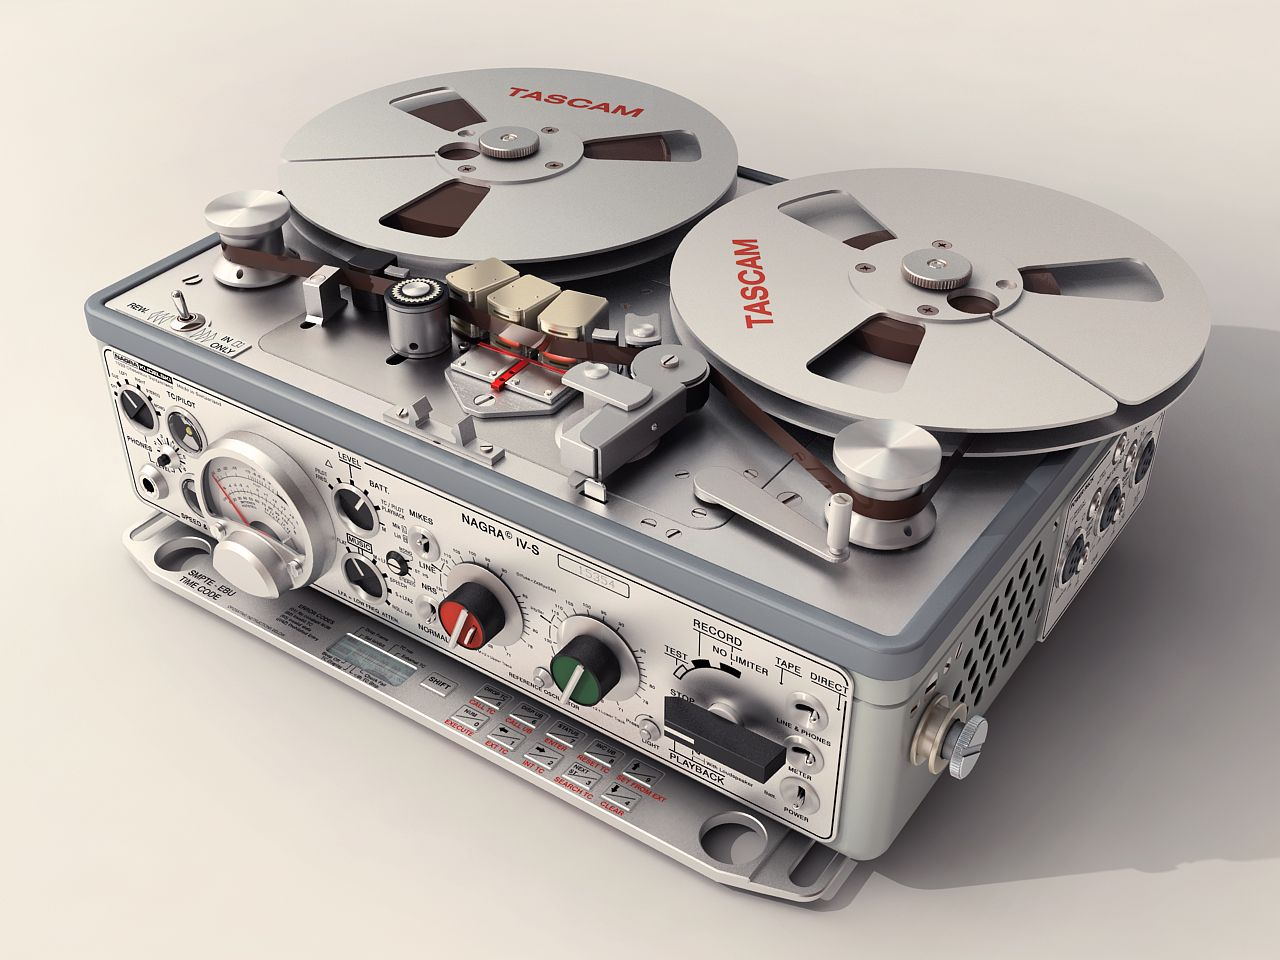 The Nagra Iv S Professional Tape Recorder Probably The